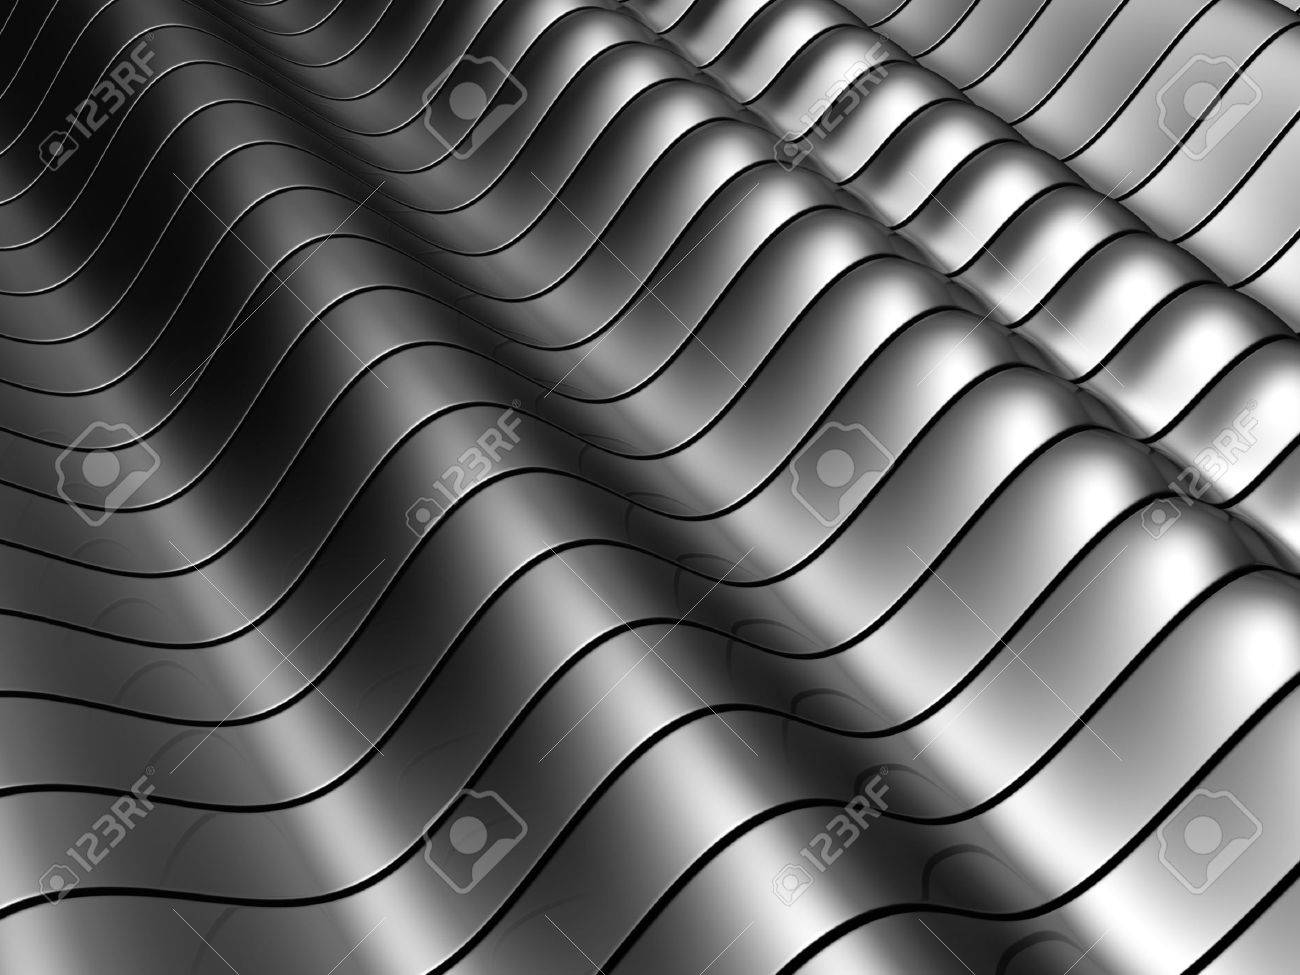 Abstract silver aluminum tube  background with reflection 3d illustration Stock Photo - 5371027